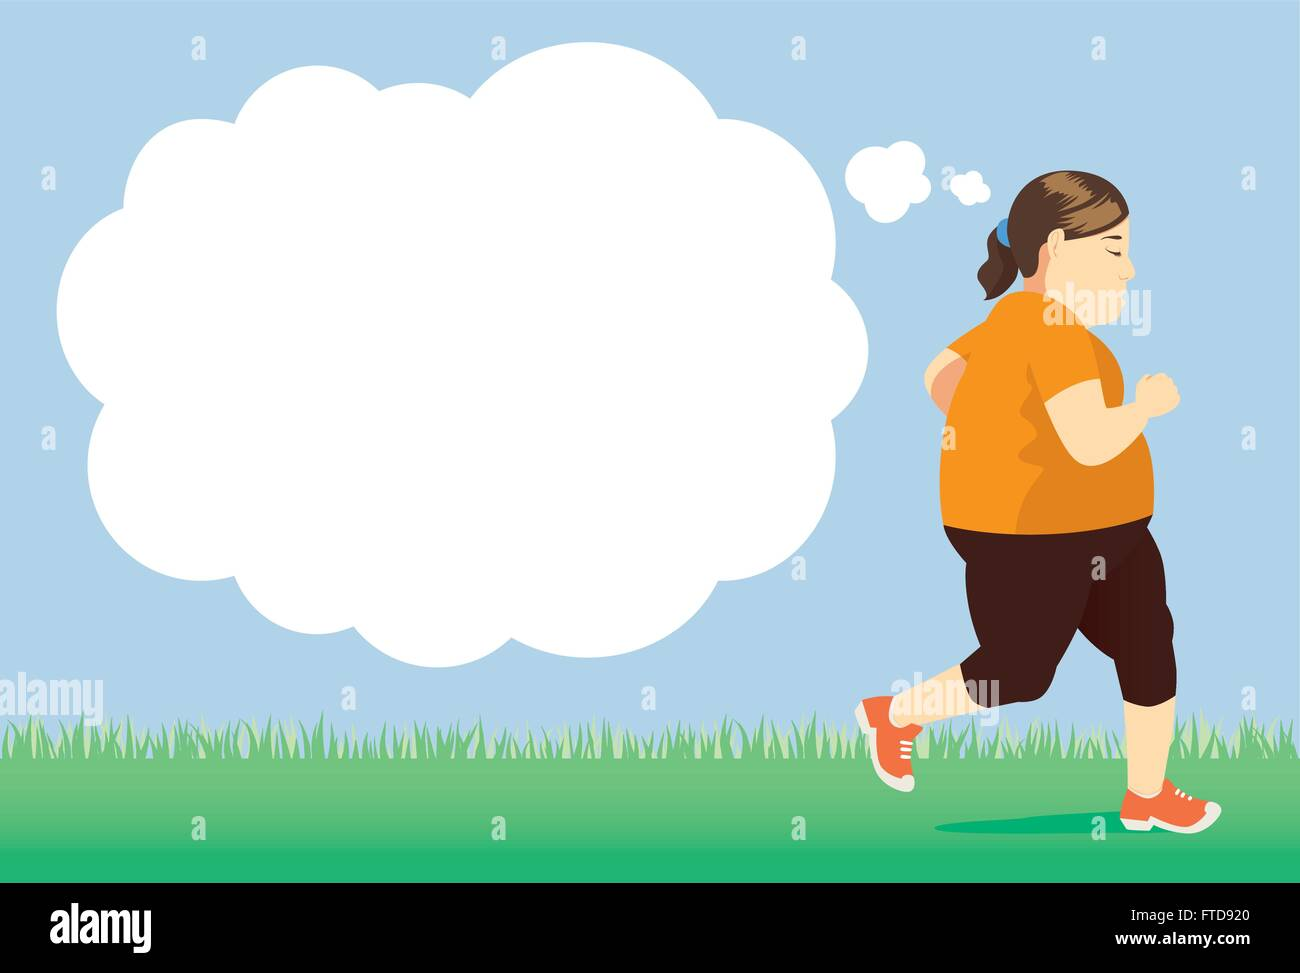 Fat woman try to lose weight by jogging in park - Stock Vector